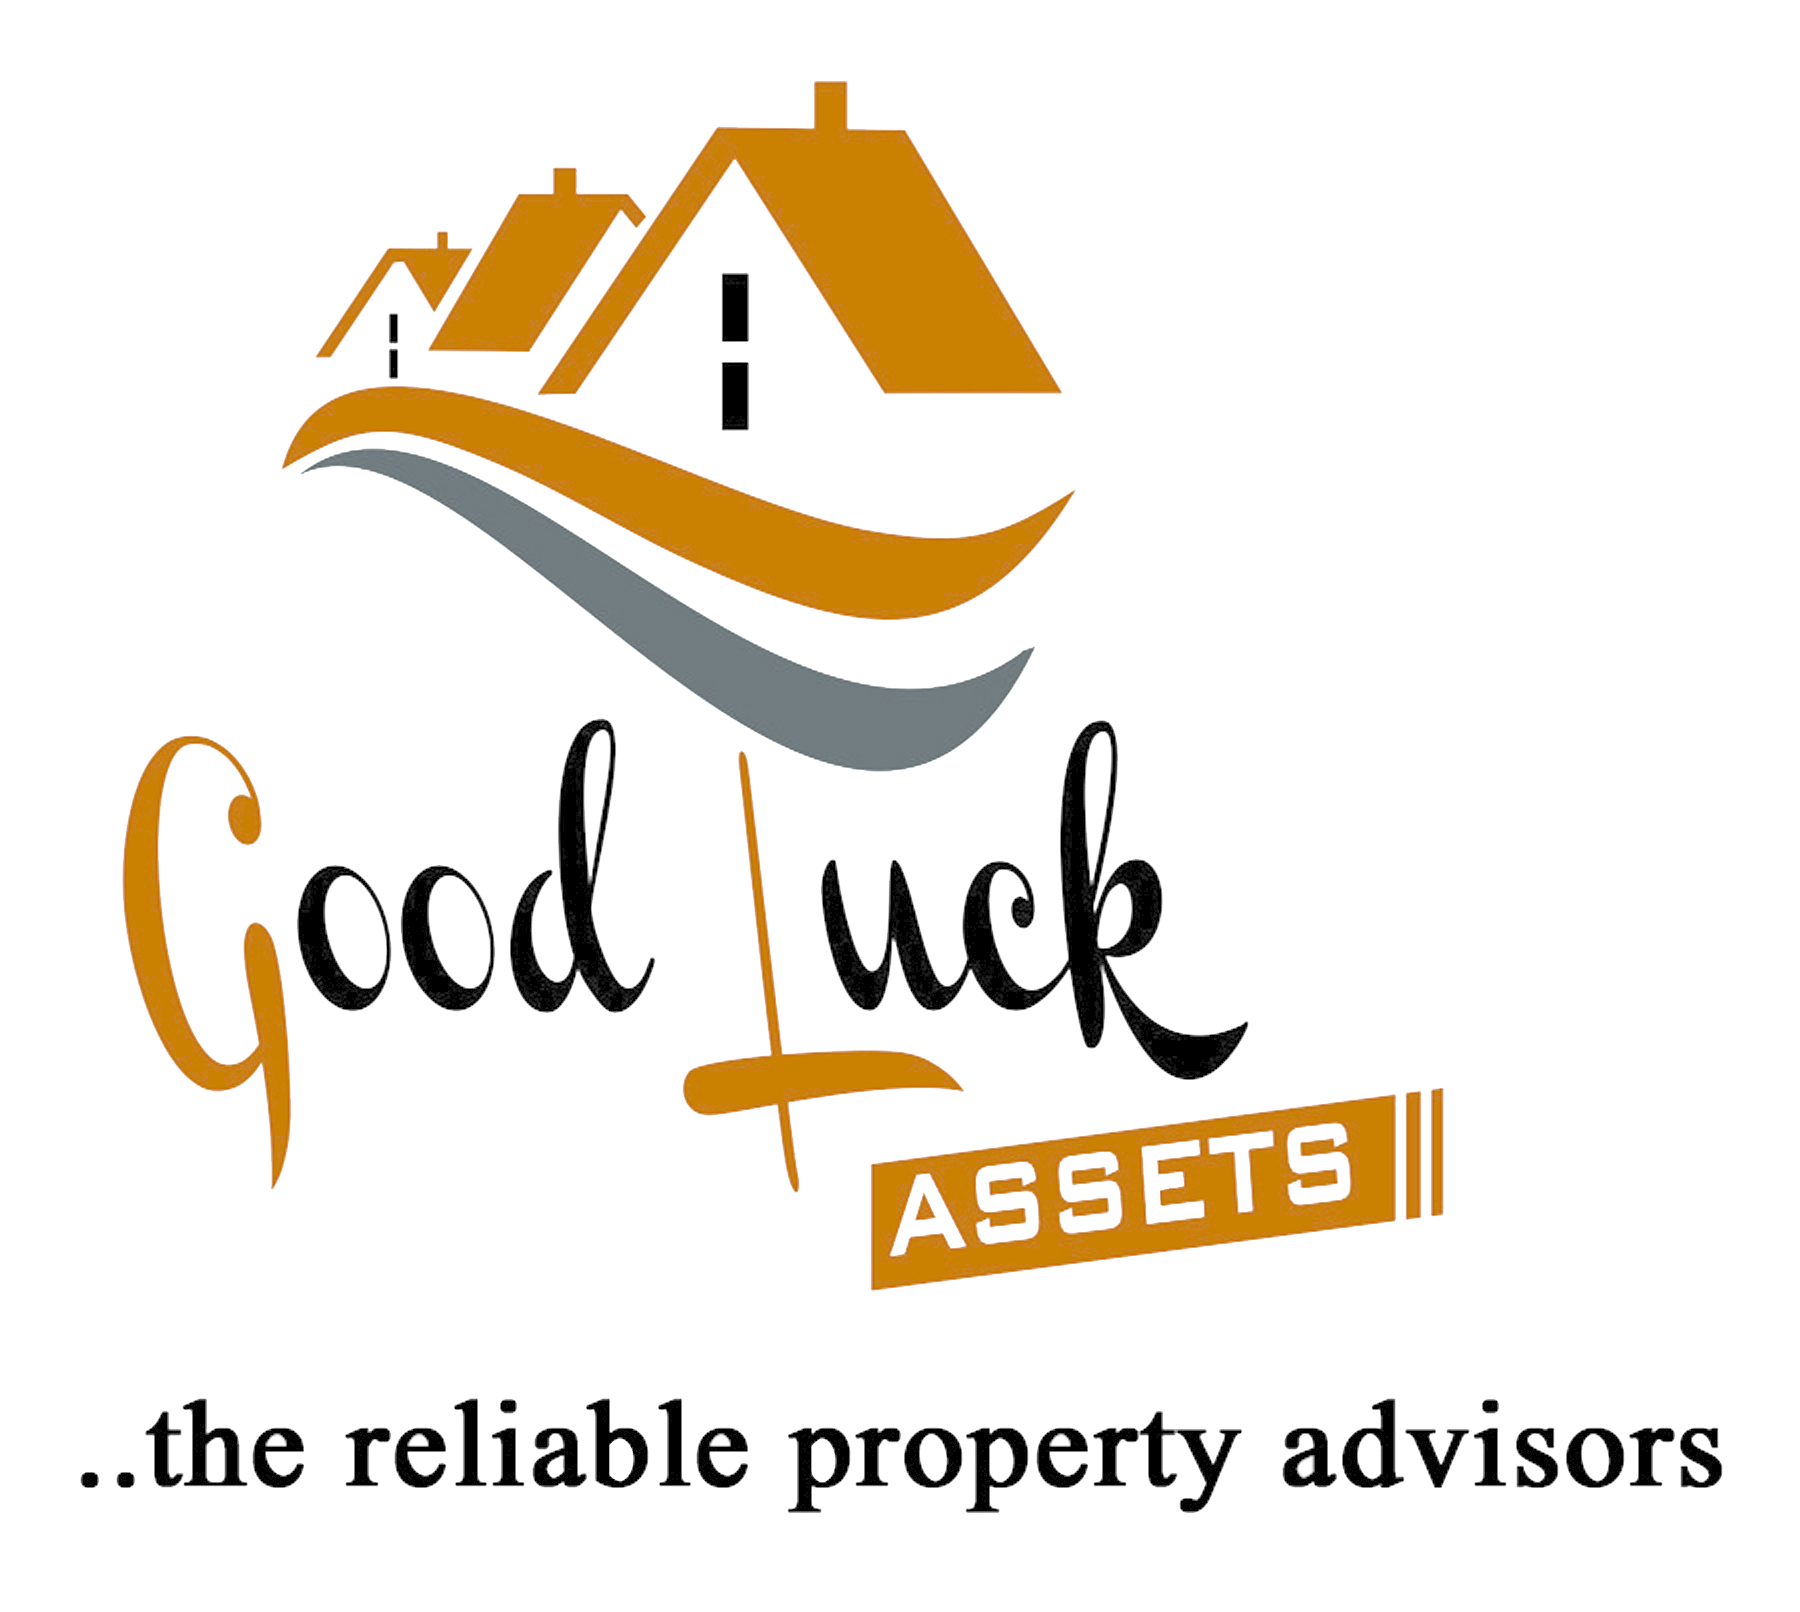 Good Luck Assets Pvt Ltd